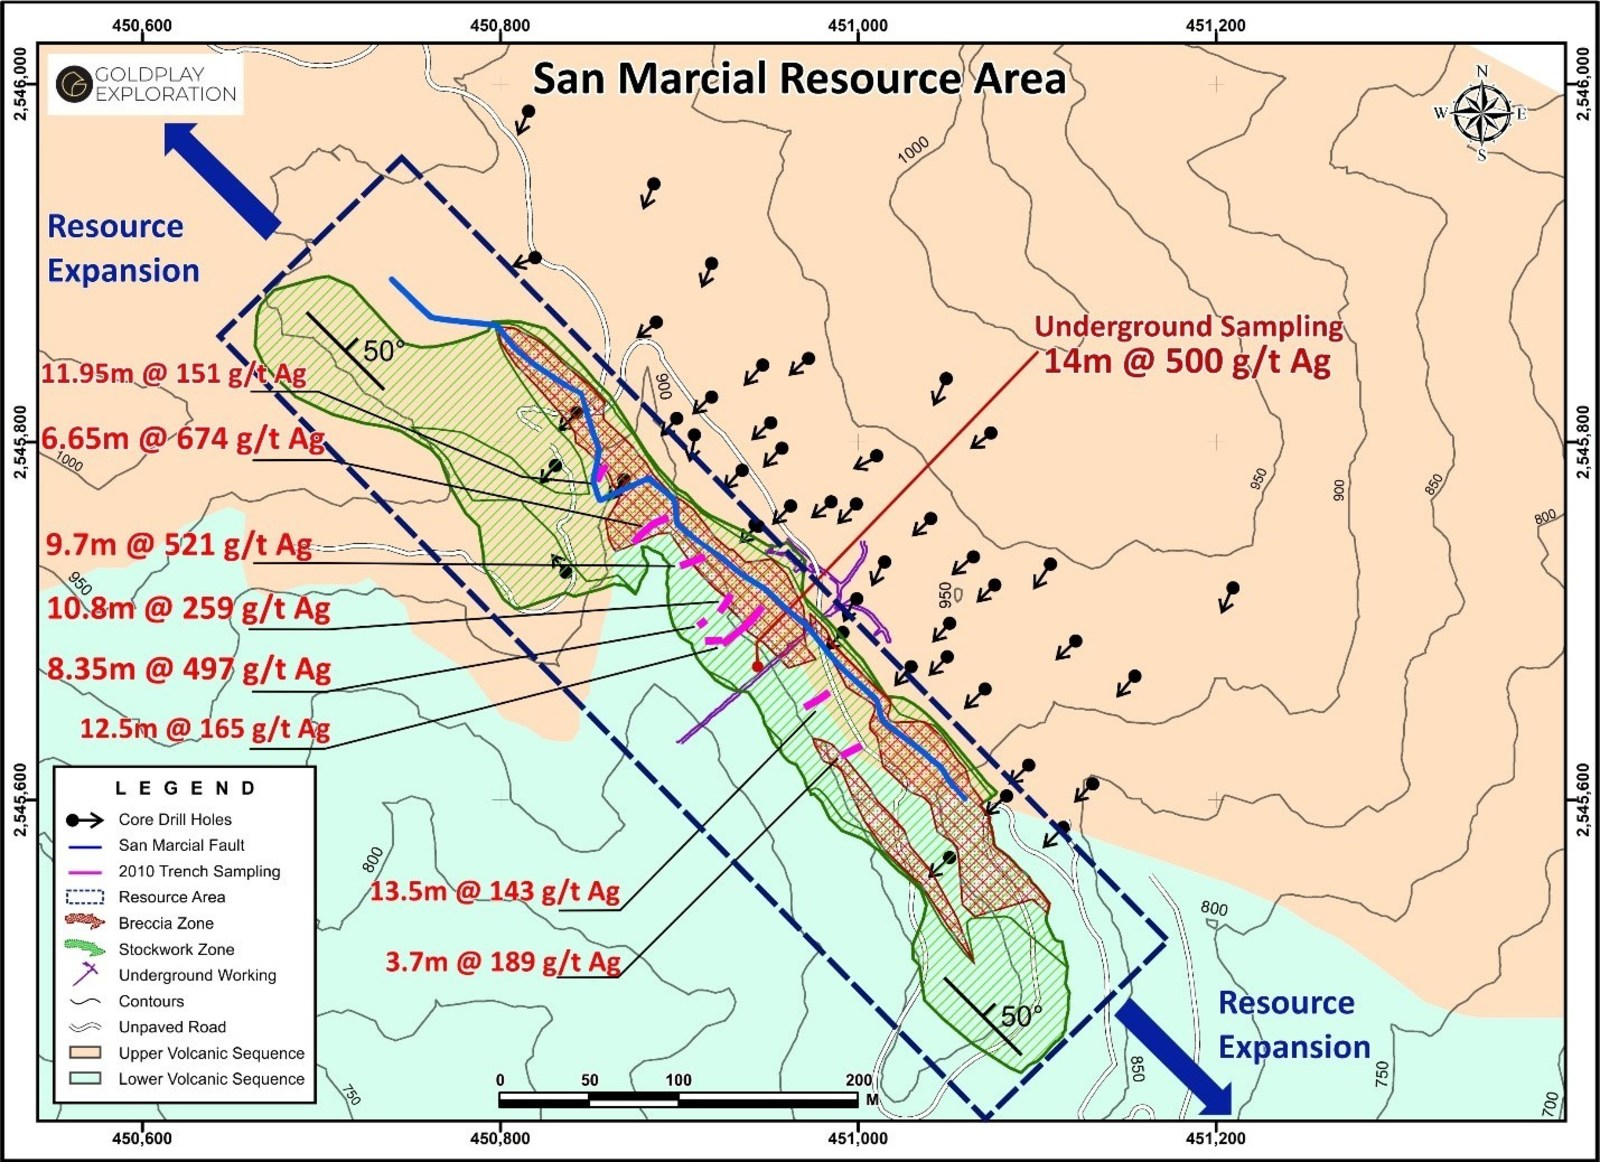 Figure 1  Location Breccia and Stockwork Zone in the San Marcial Resource Area